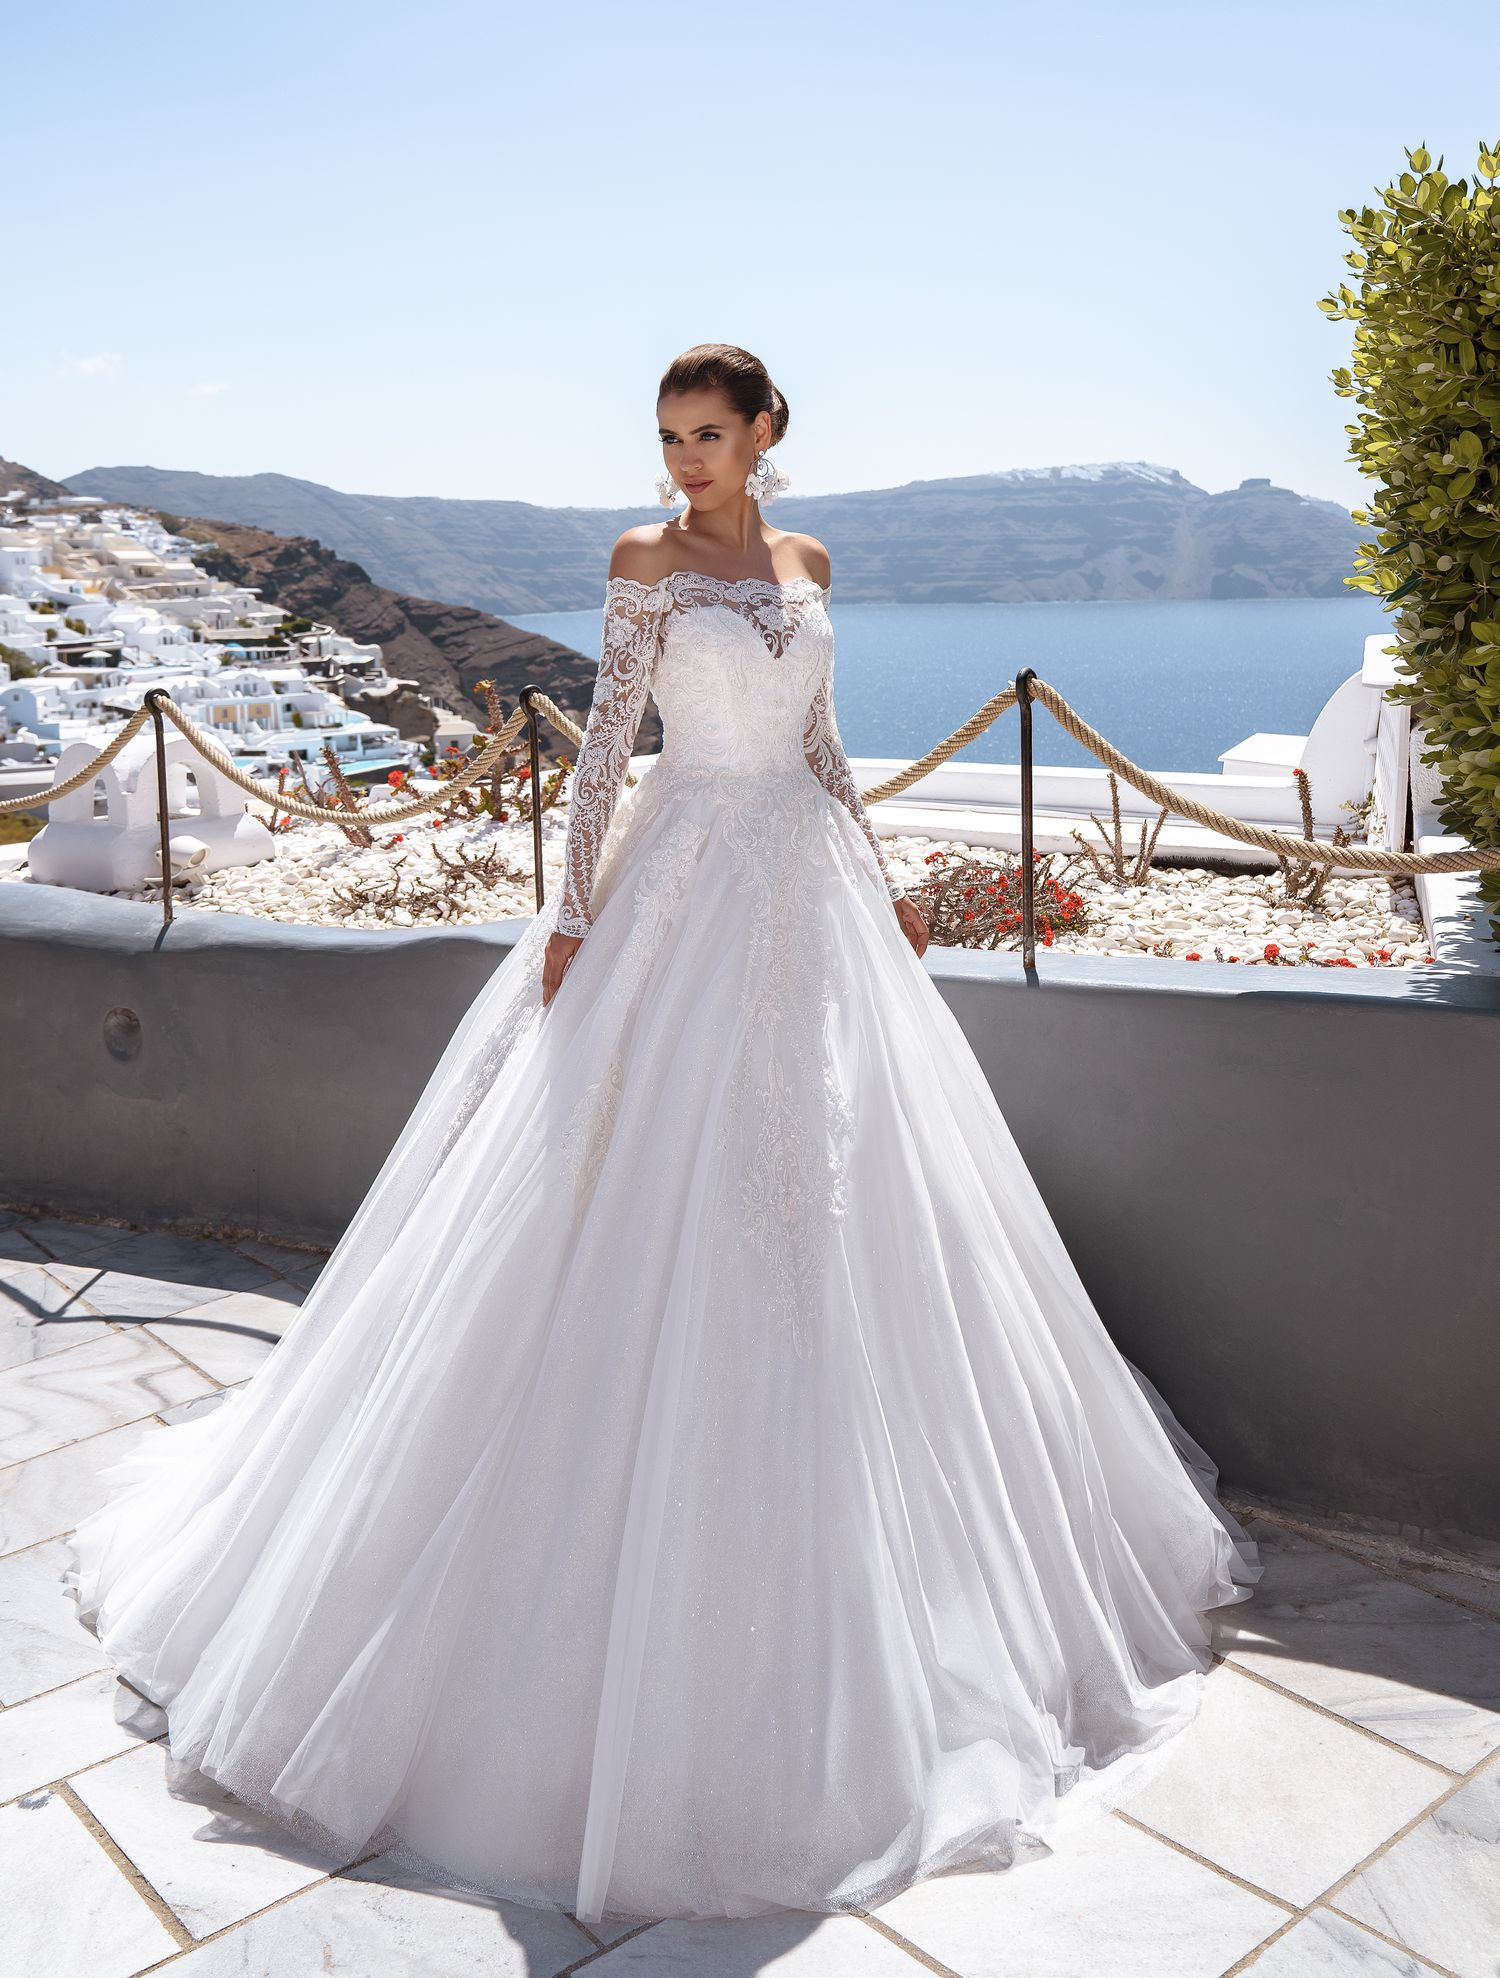 Wedding dress with open shoulder from the producer Silviamo-1